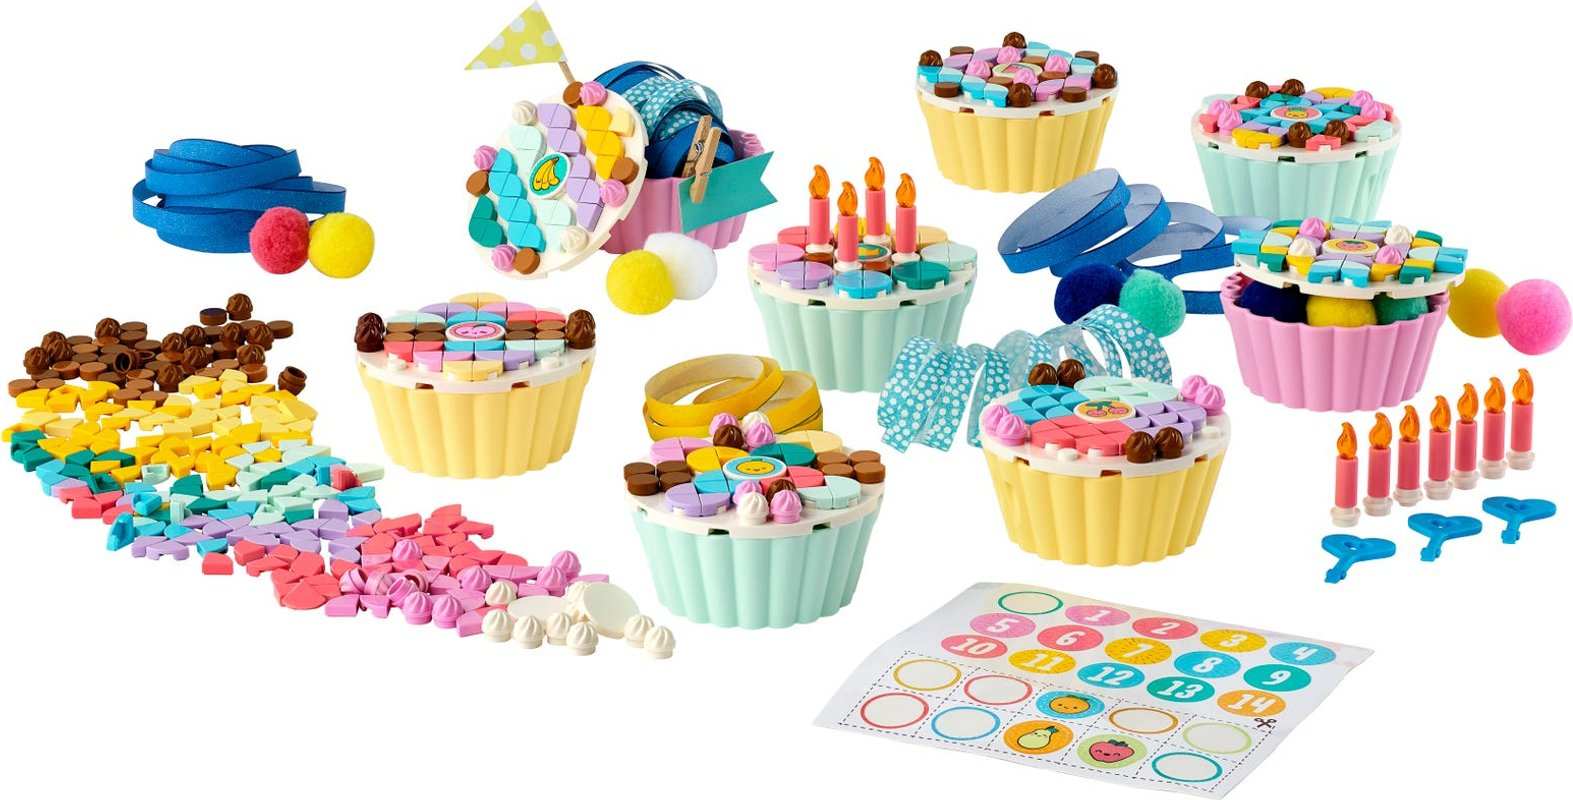 Creative Party Kit components